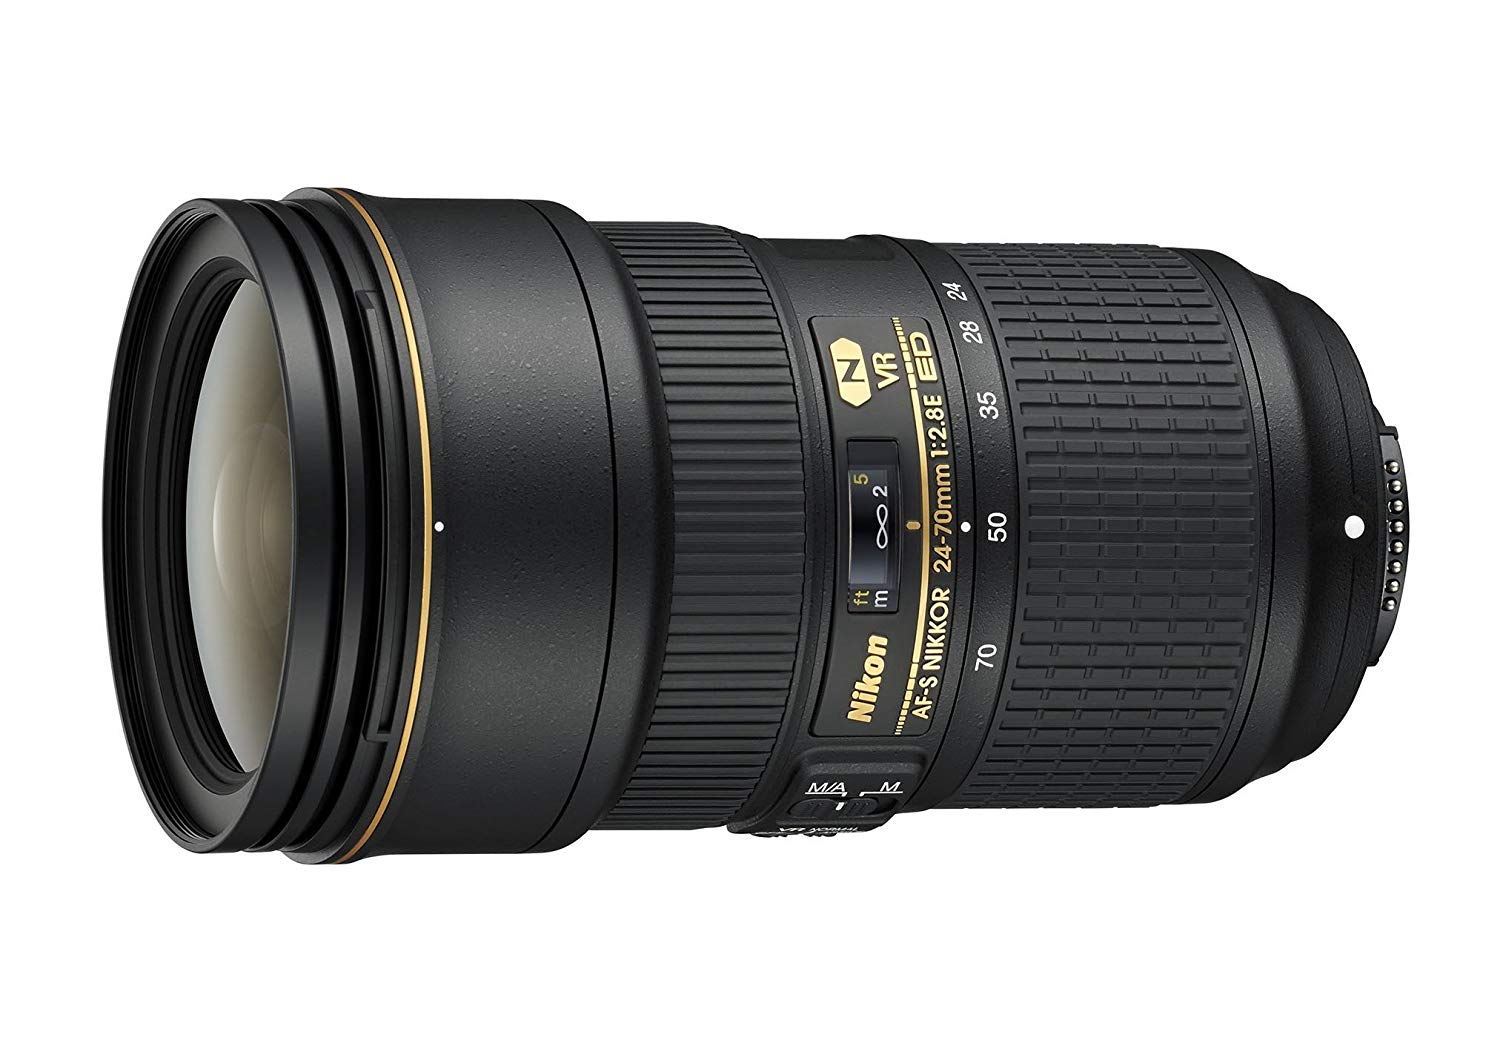 Nikkor 24-70mm f/2.8 (Zoom)